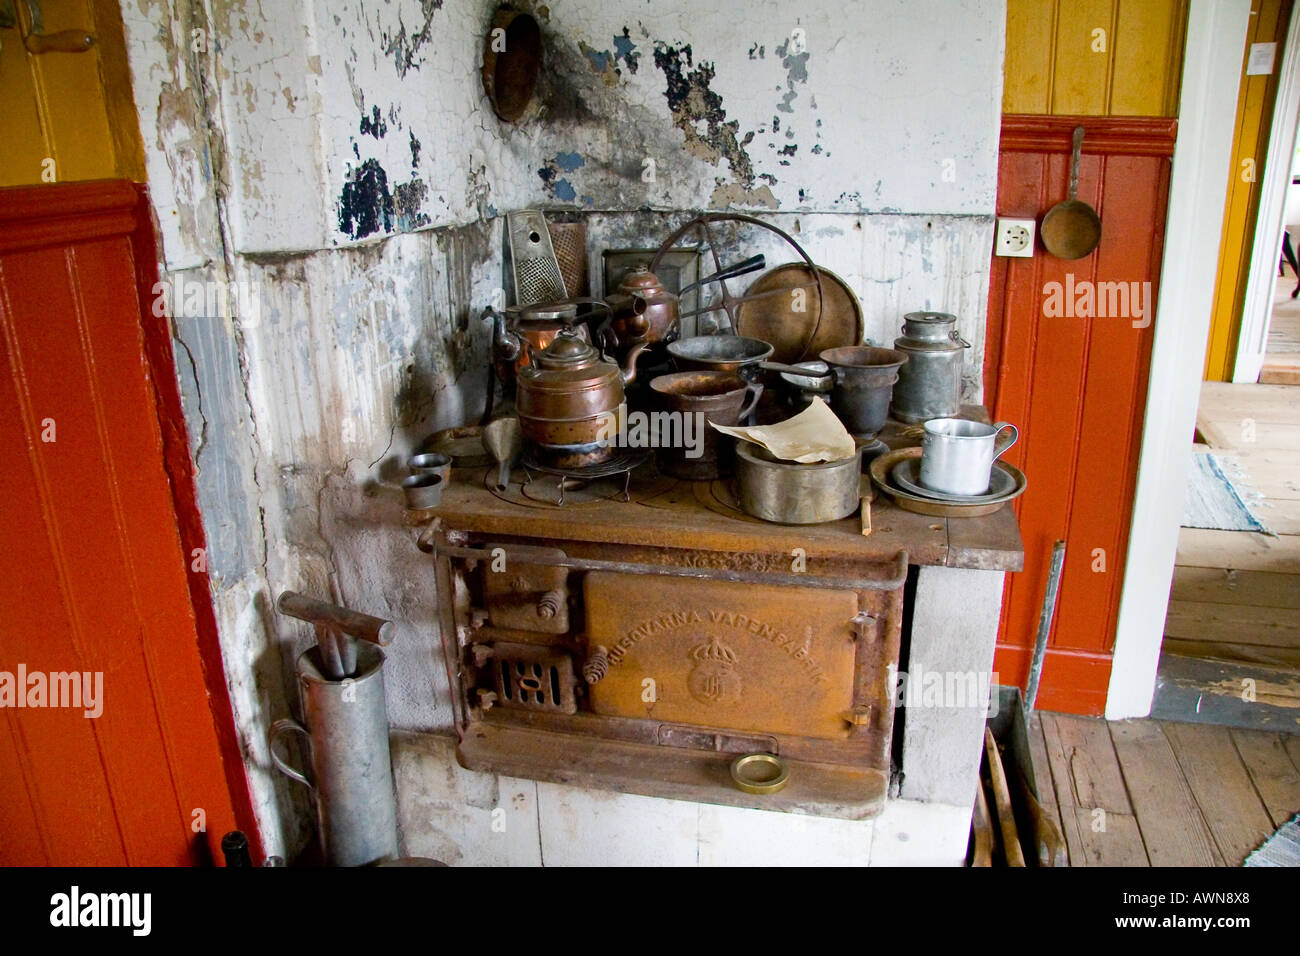 Old swedish stove with households - Stock Image